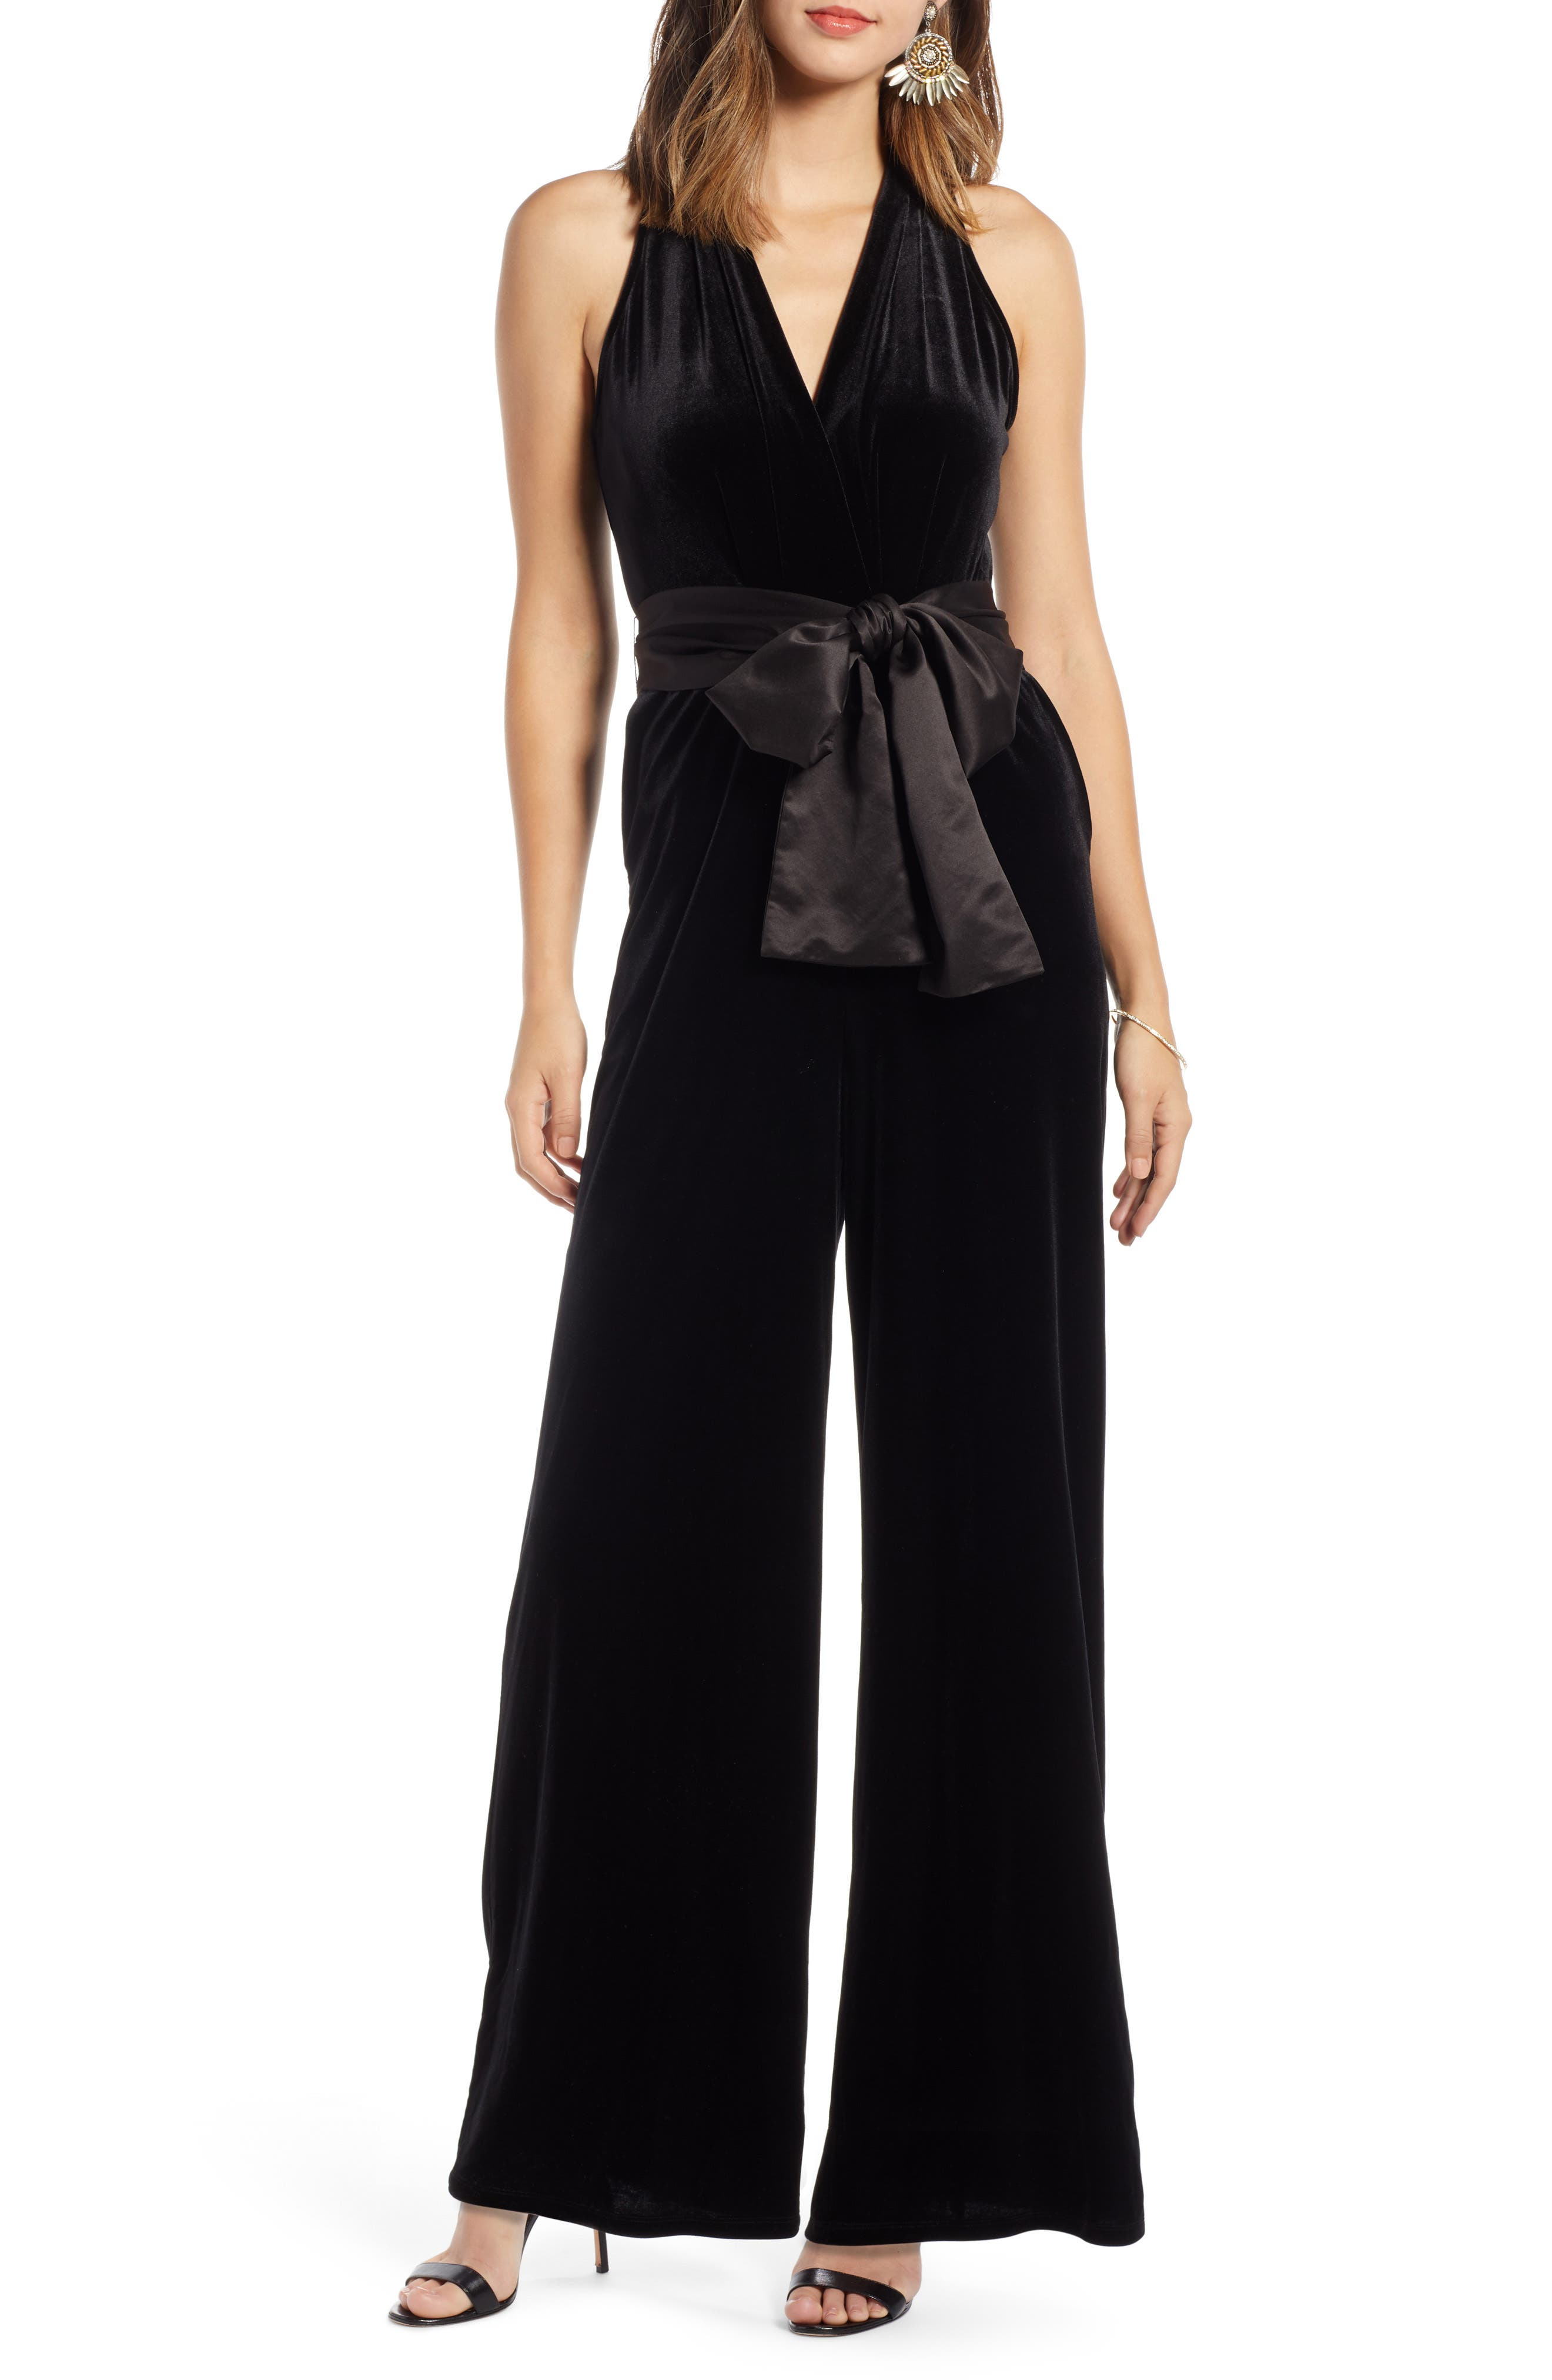 70s Prom, Formal, Evening, Party Dresses Petite Womens 1901 Velvet Jumpsuit Size X-Small P - Black $71.40 AT vintagedancer.com